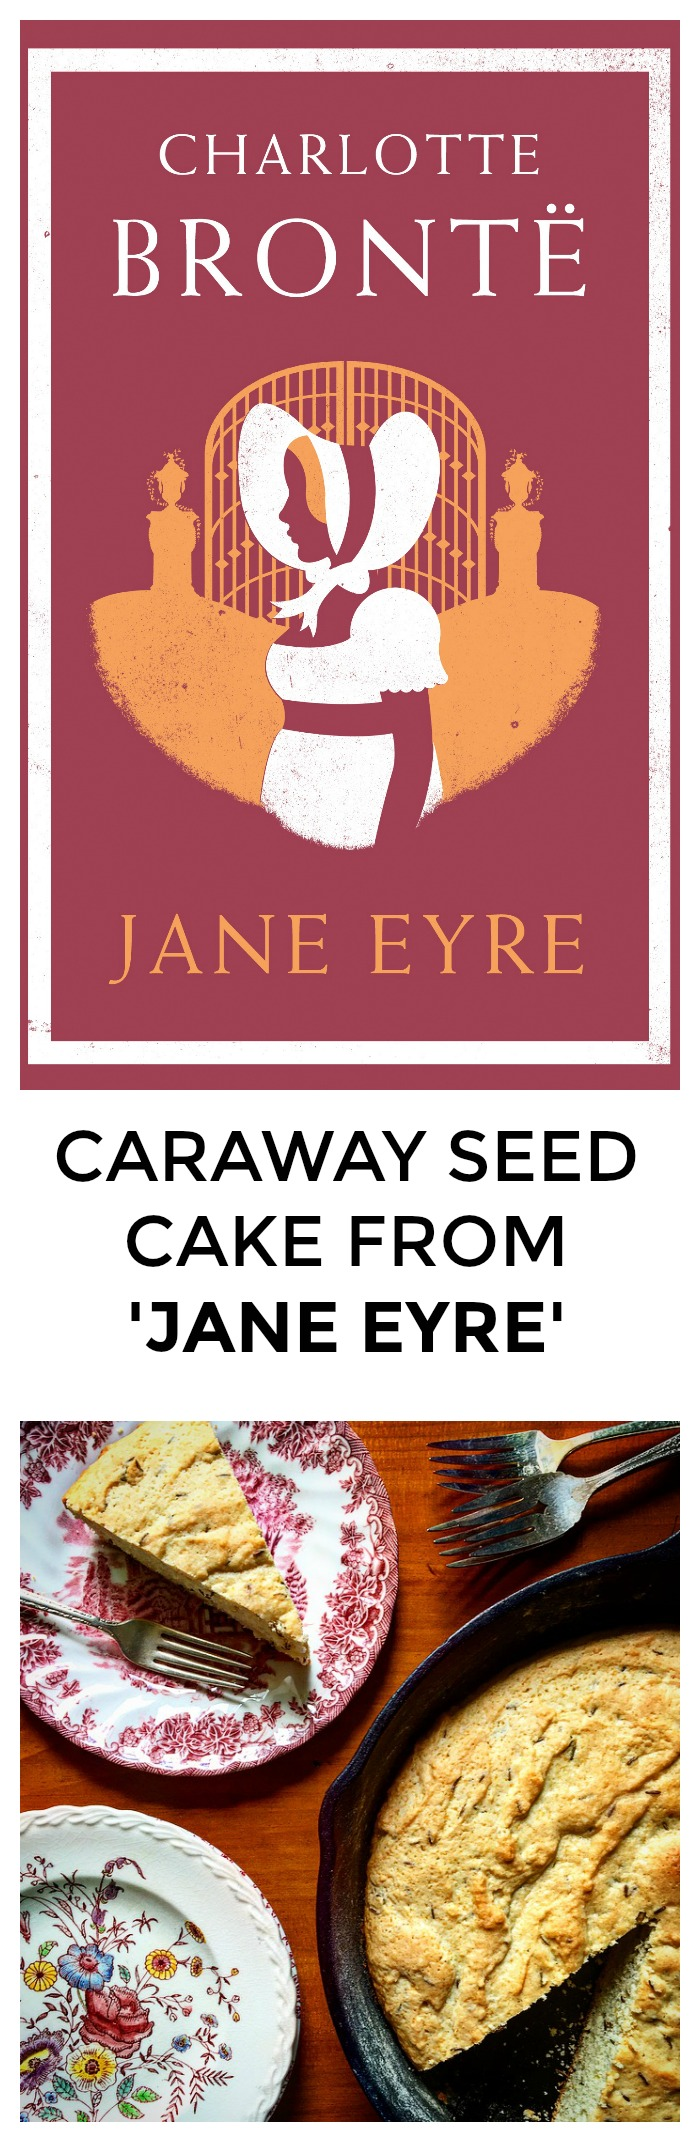 Want a great recipe from Jane Eyre? One that will help you win book club even if you didn't finish the book? Click through for this easy, delicious recipe for Caraway Seed Cake! >> yesandyes.org